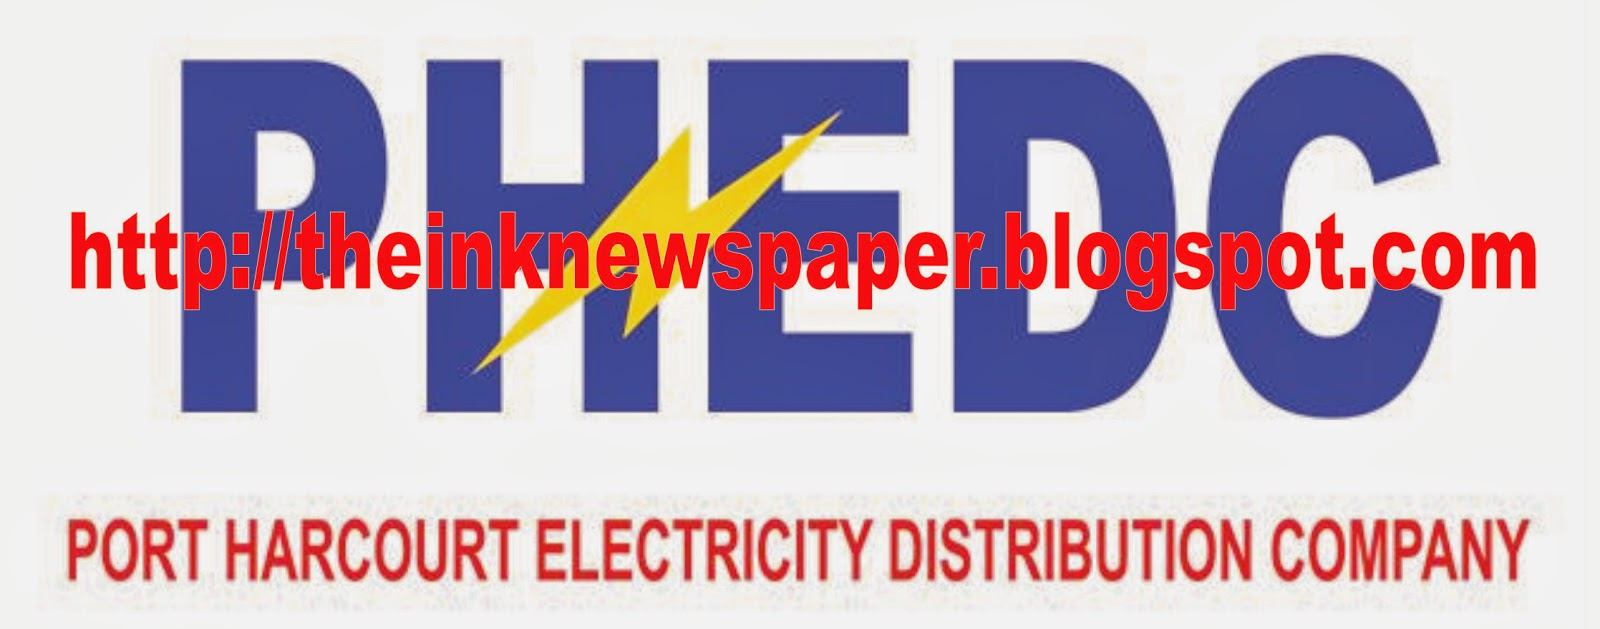 Perceived imbalances in PHEDC causes drawbacks in AKS power sector